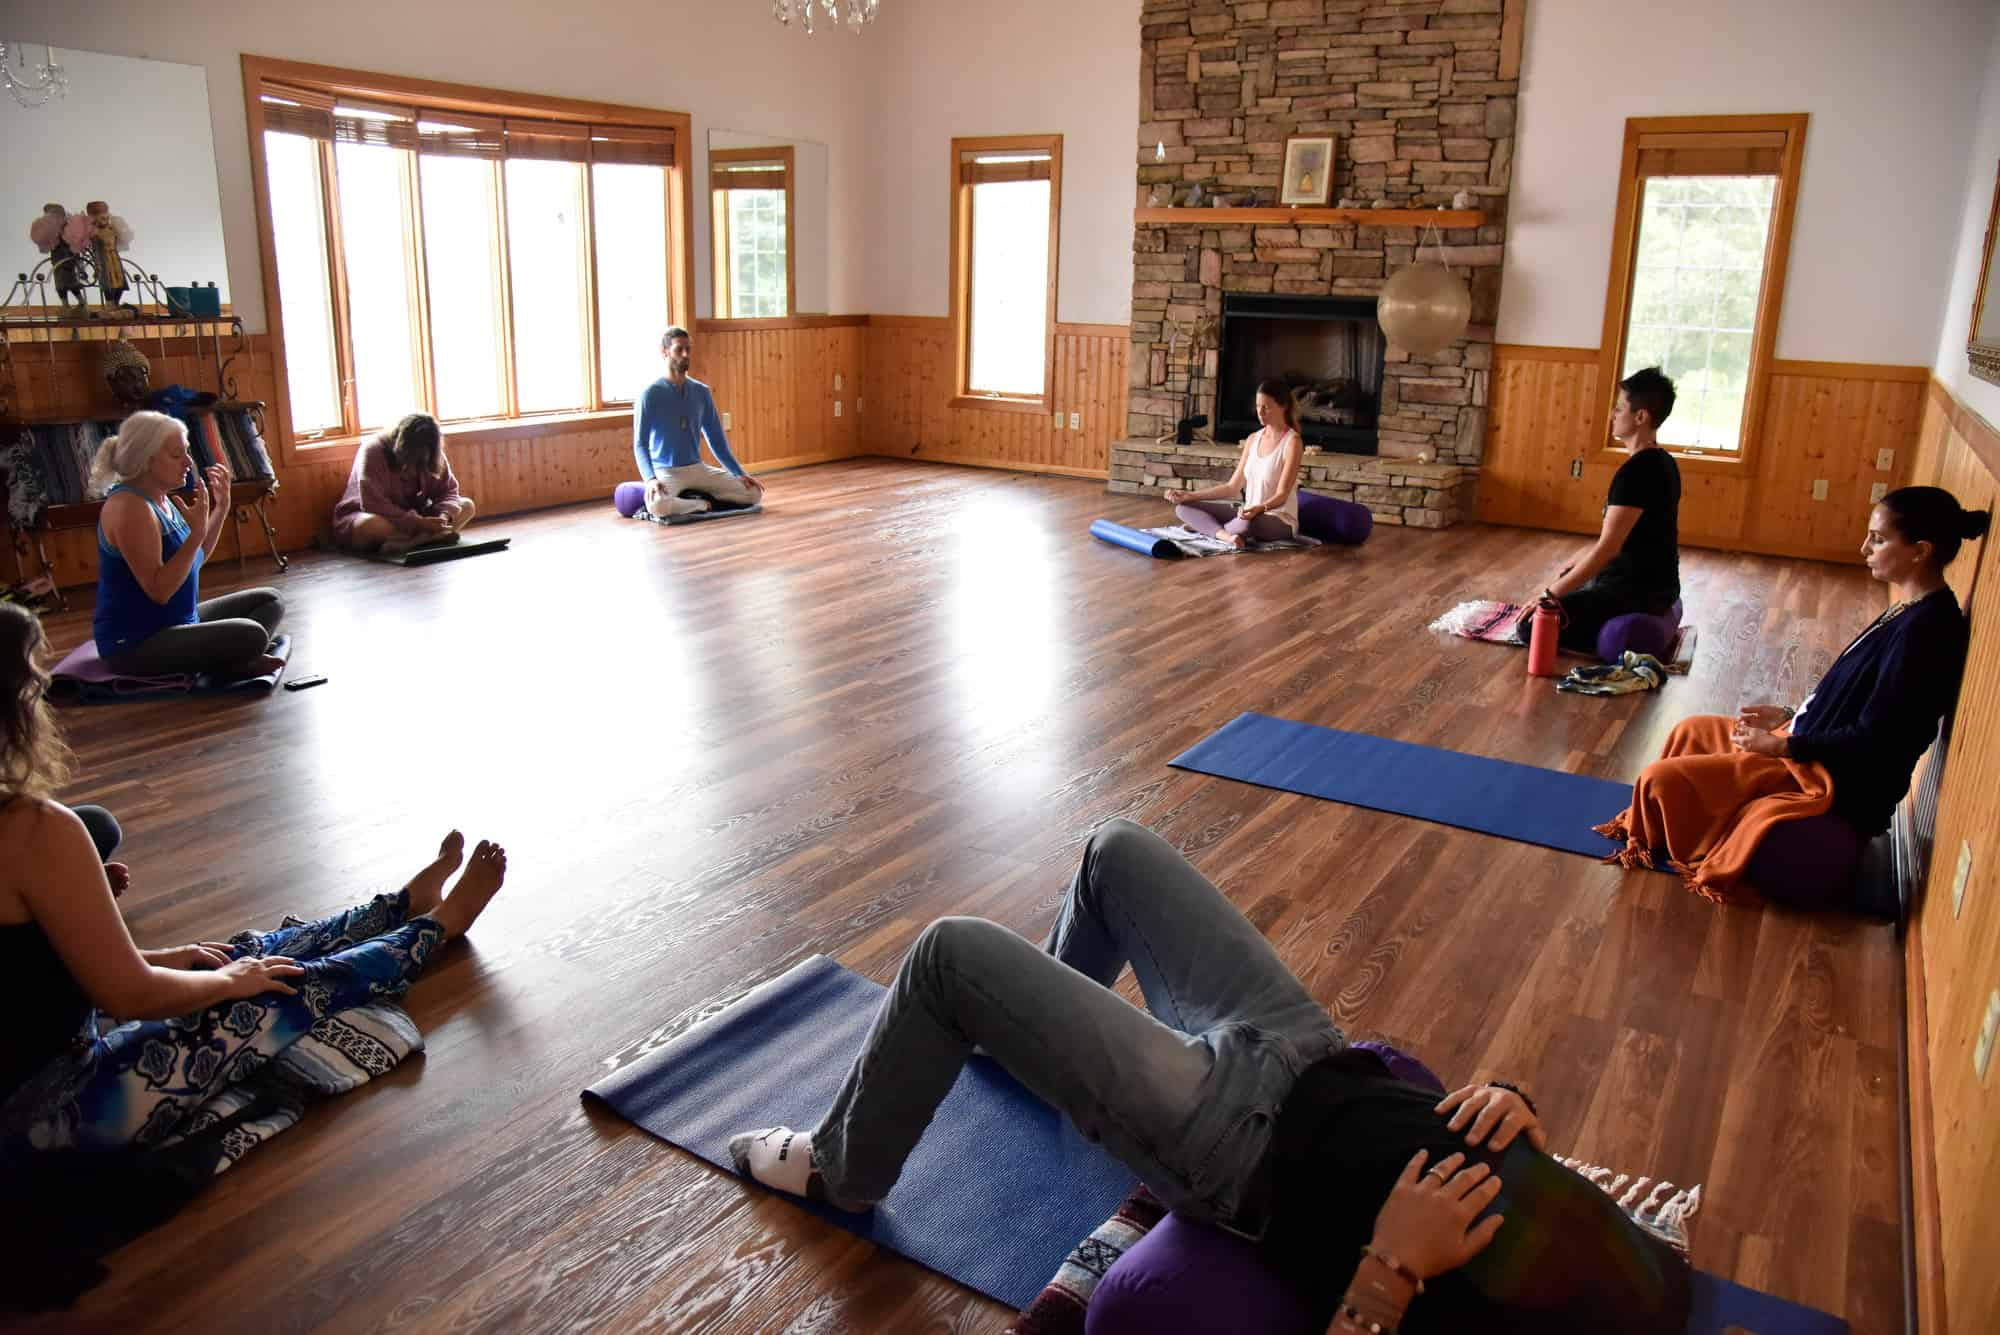 Yoga & Meditation at The Horse Shoe Farm